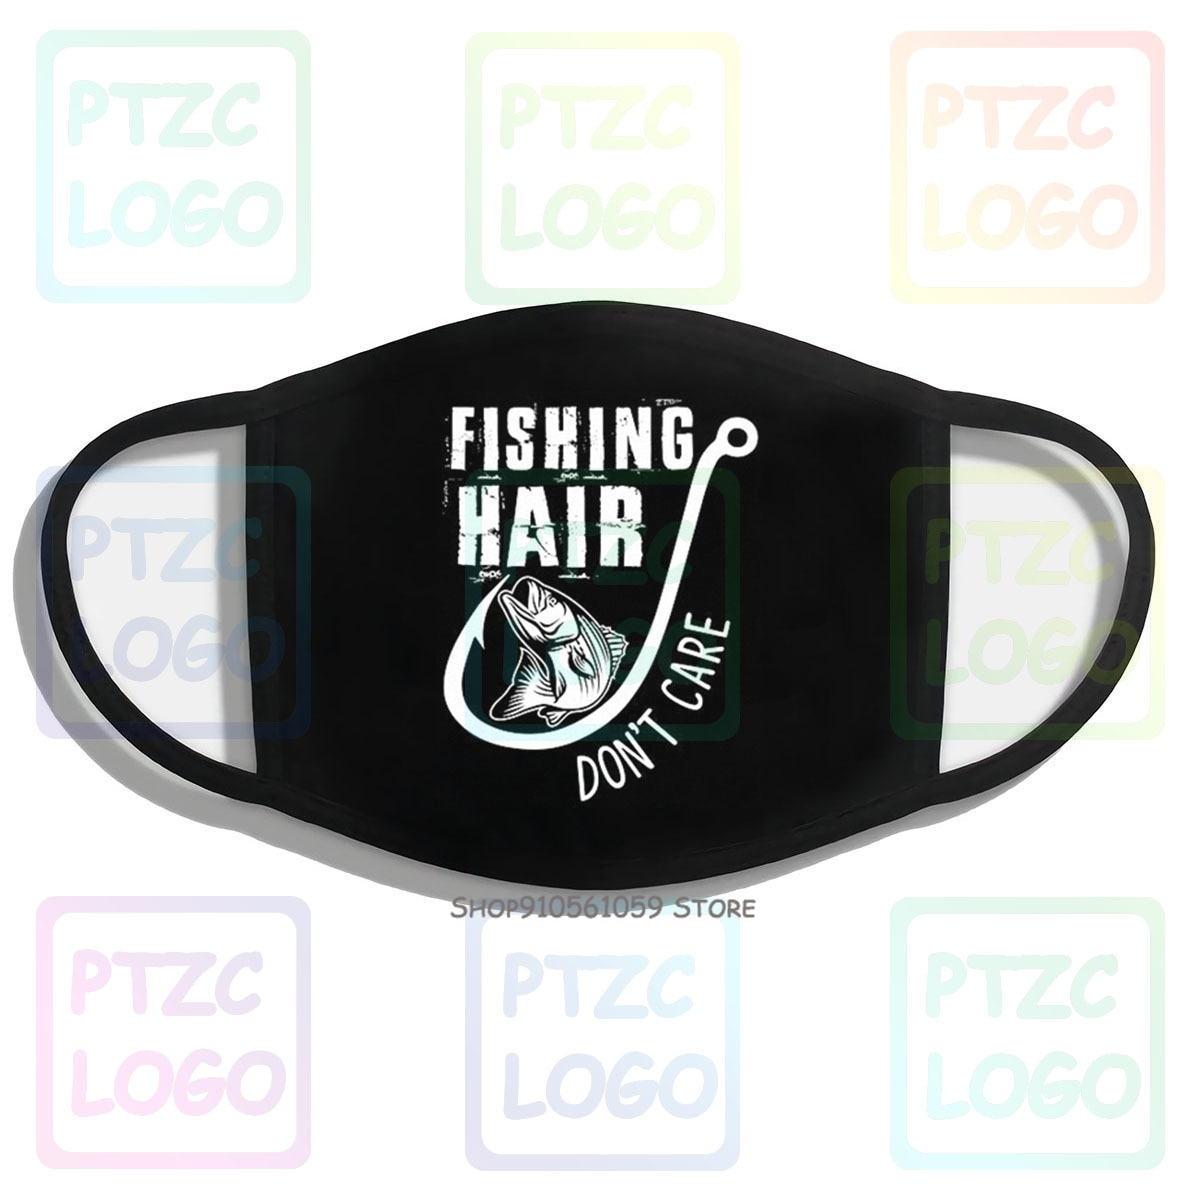 Fishing Hair DonT Care Mouth Face Mask